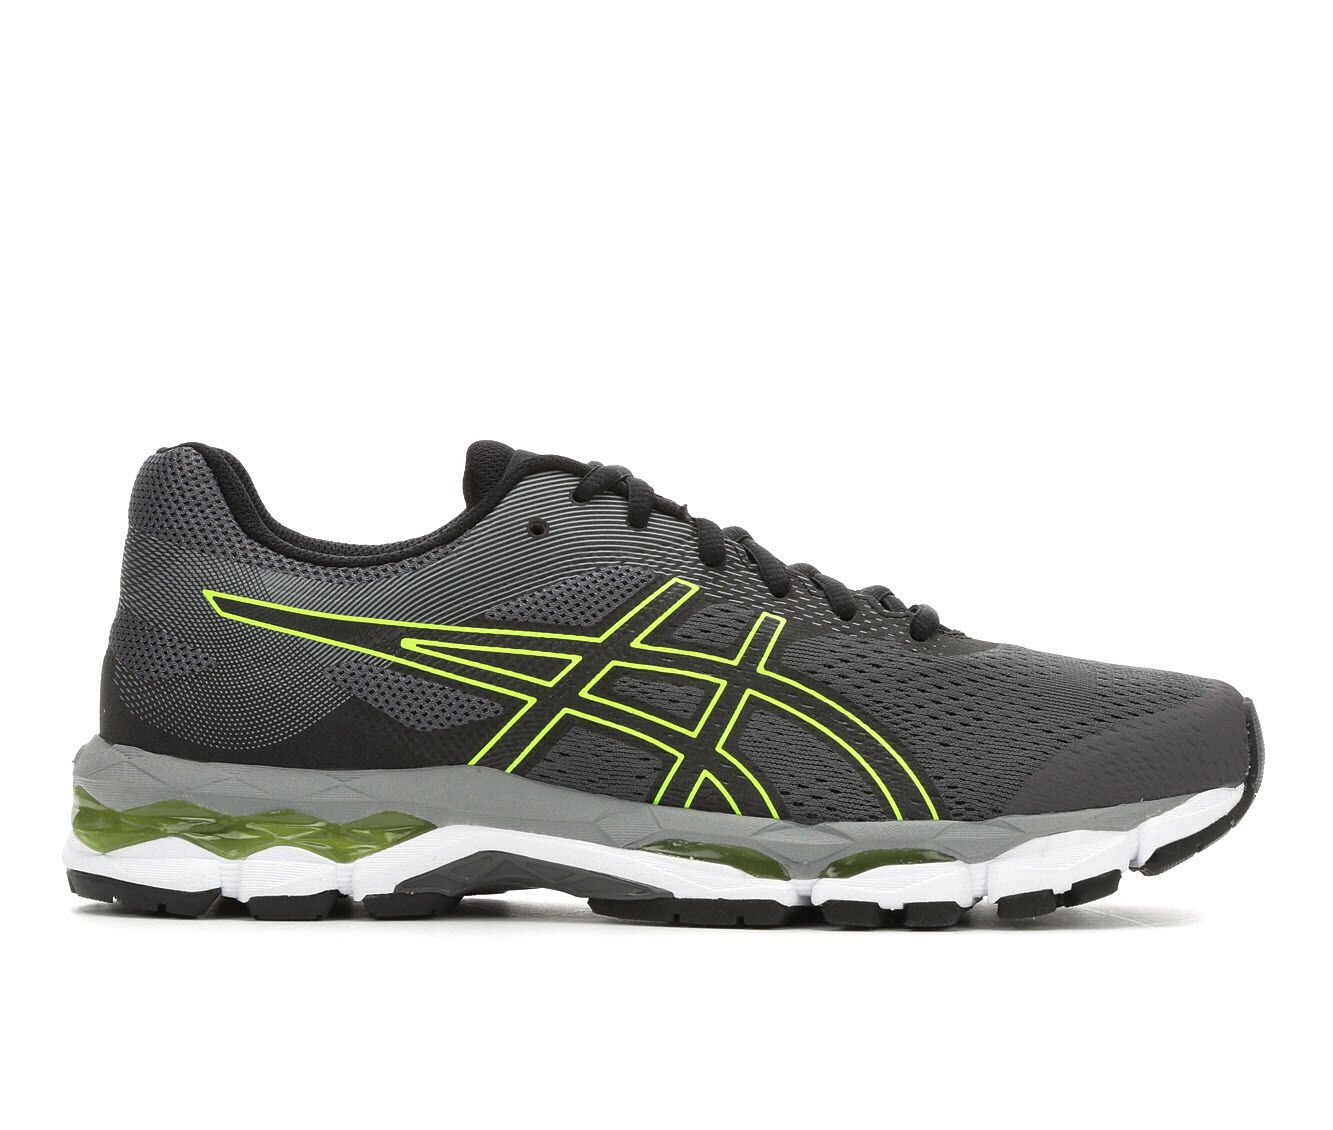 affordable Men's ASICS Gel Superion 2 Running Shoes Gry/Grn/Bk/Wh